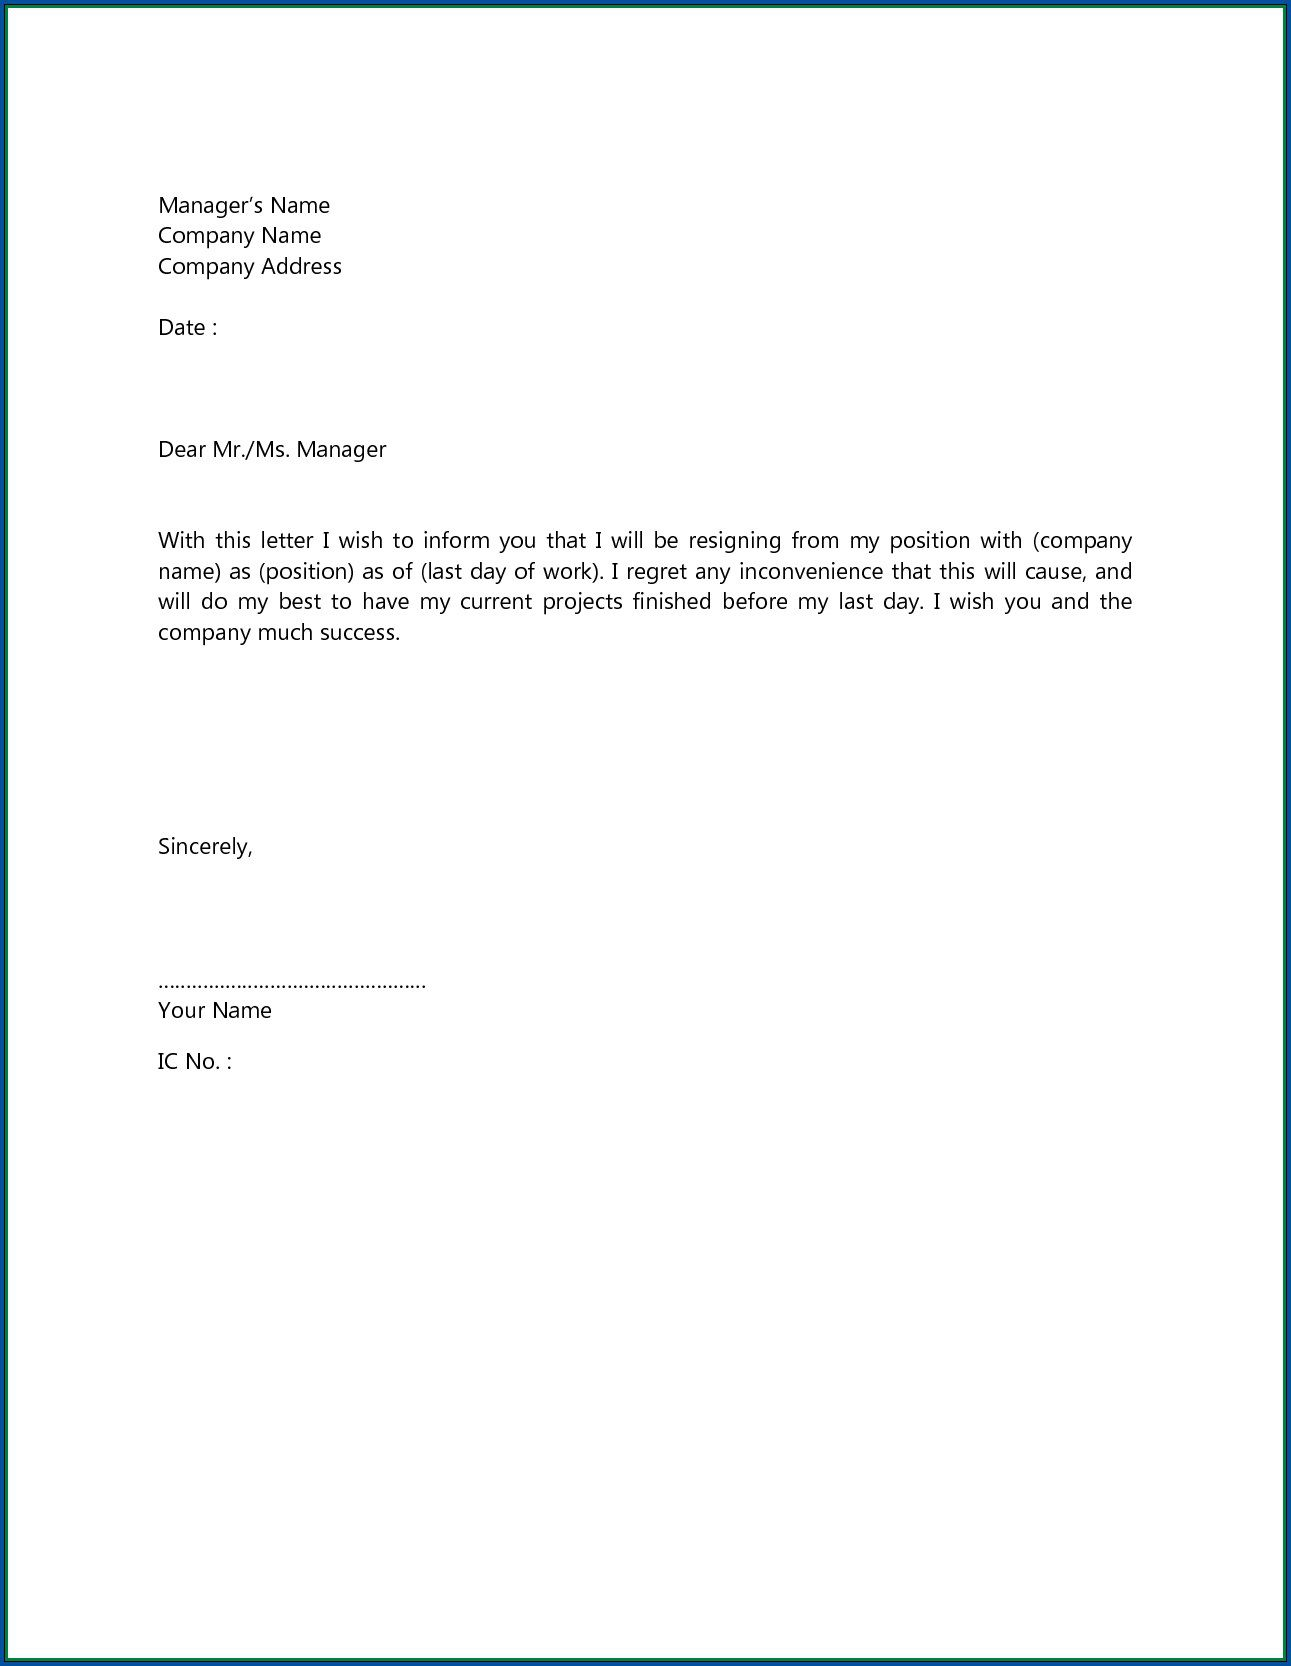 Job Resignation Letter Template from www.addictionary.org